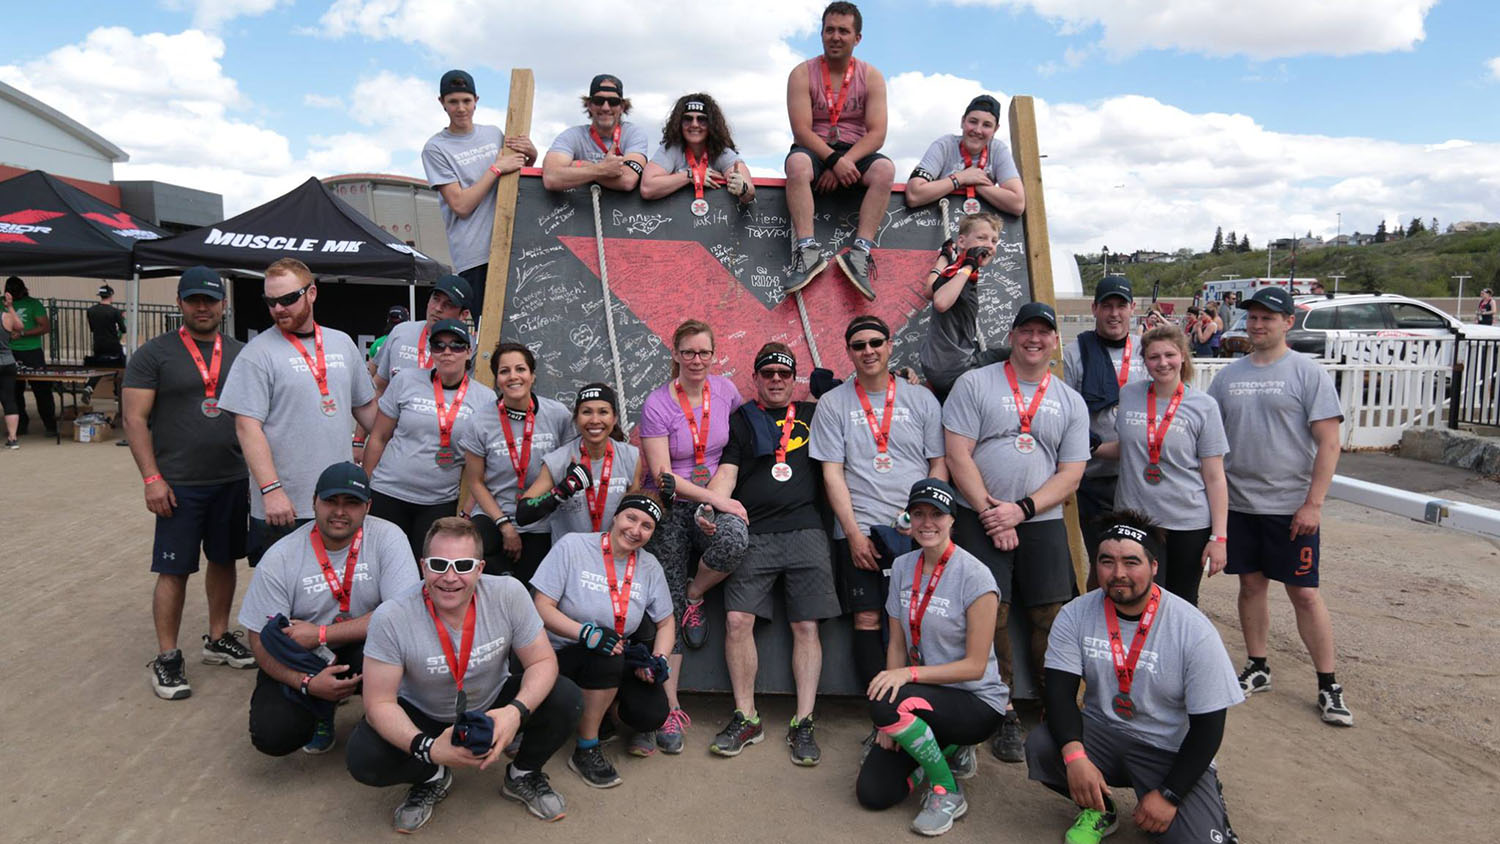 Startec Shows True Maverick Spirit at the X Warrior Challenge event in Calgary